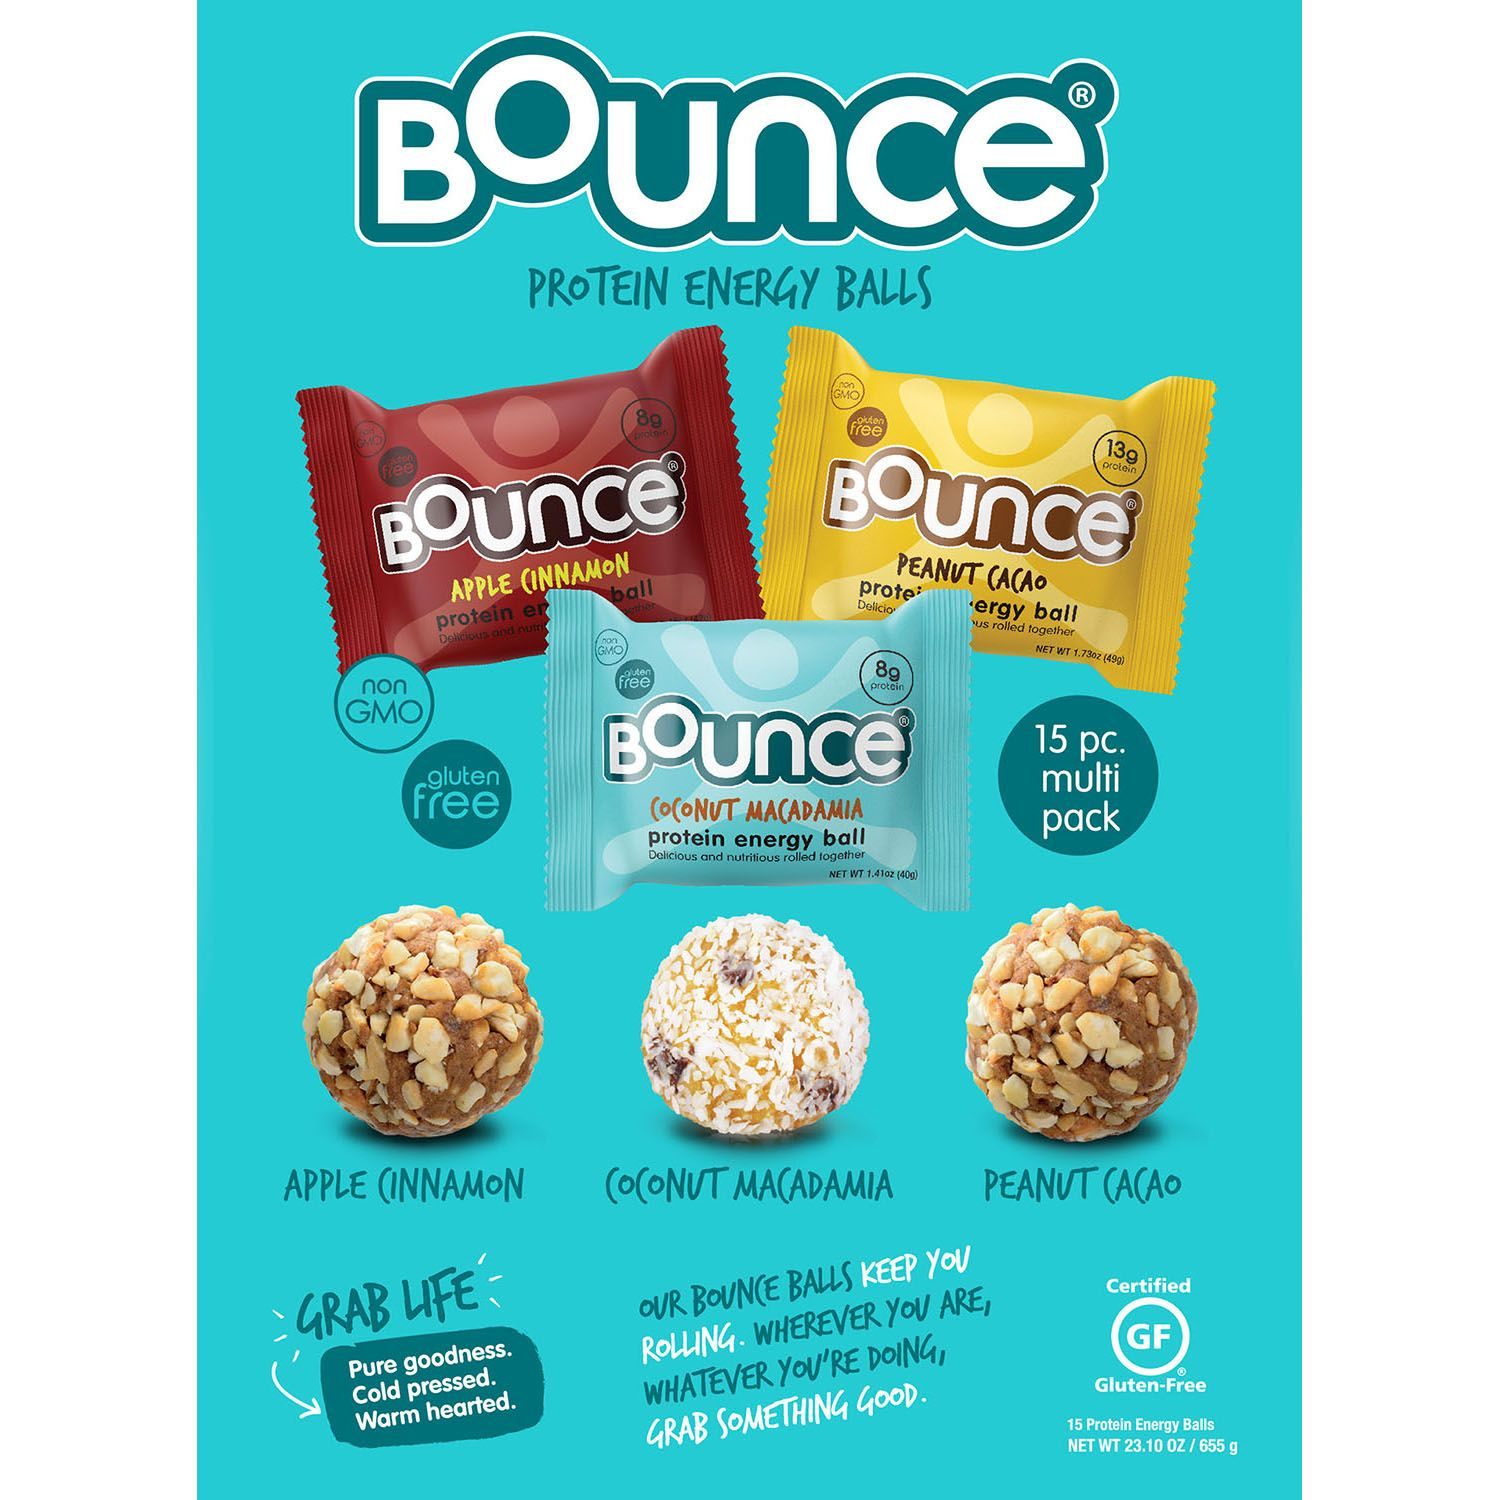 Bounce Protein Energy Balls (15 ct.)